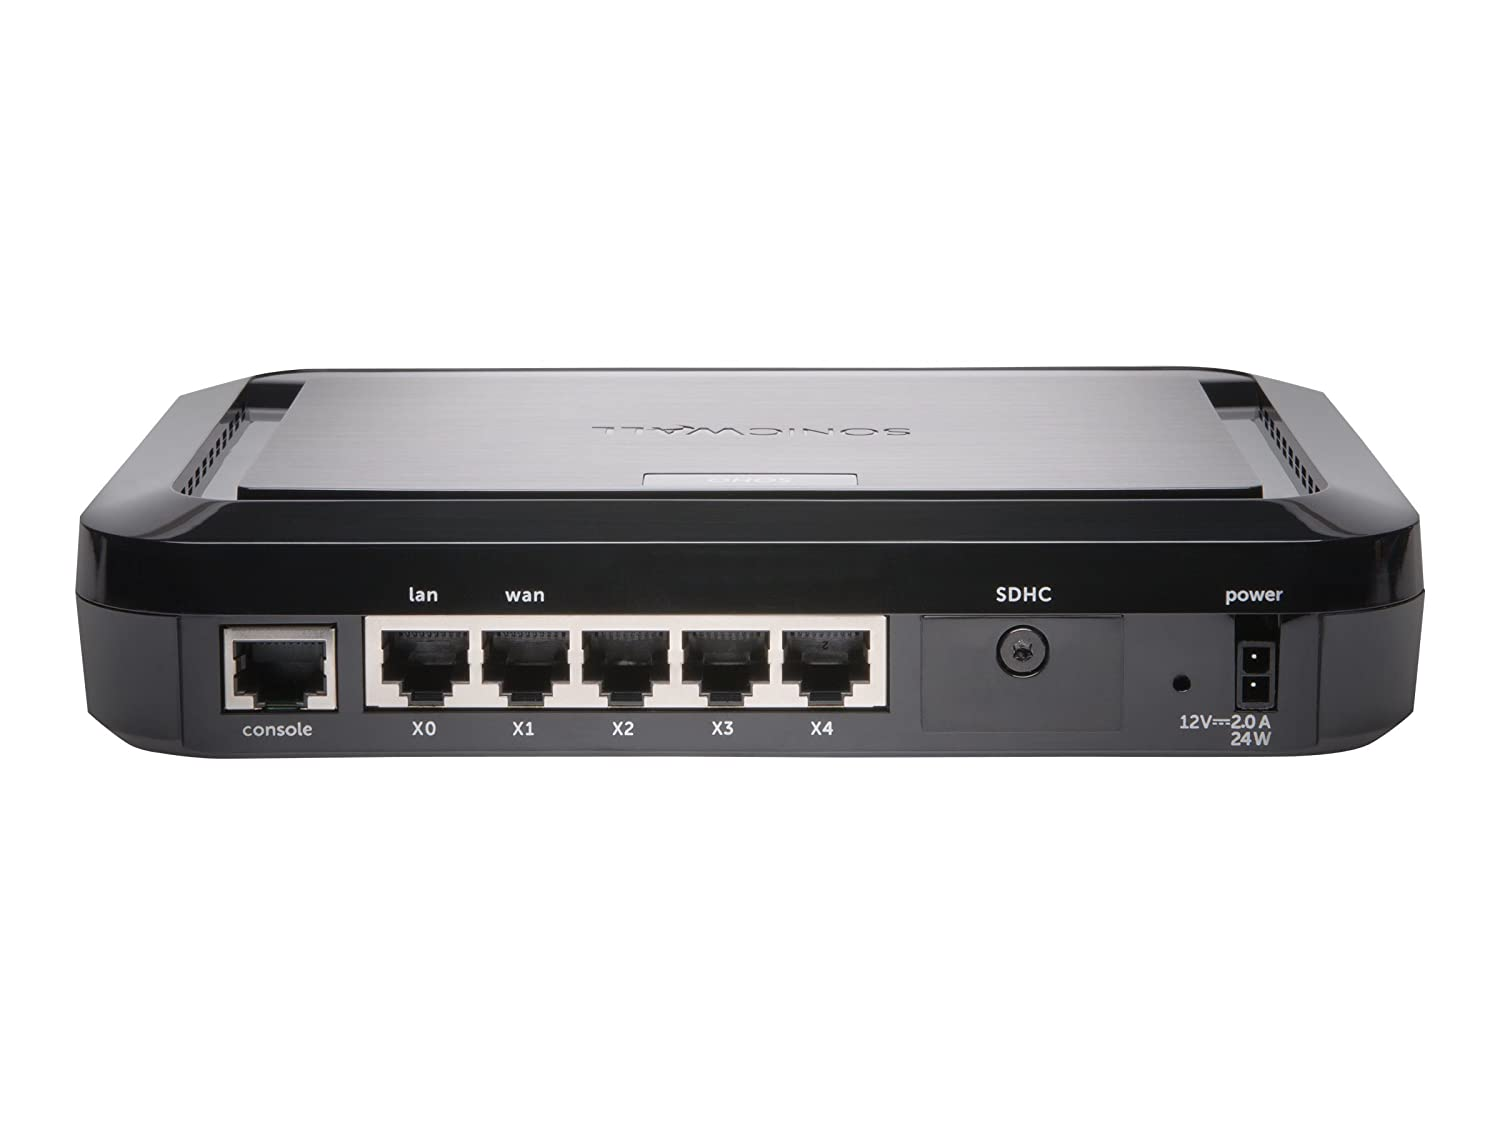 SonicWall | SOHO | 01-SSC-0217 | Security VPN Firewall